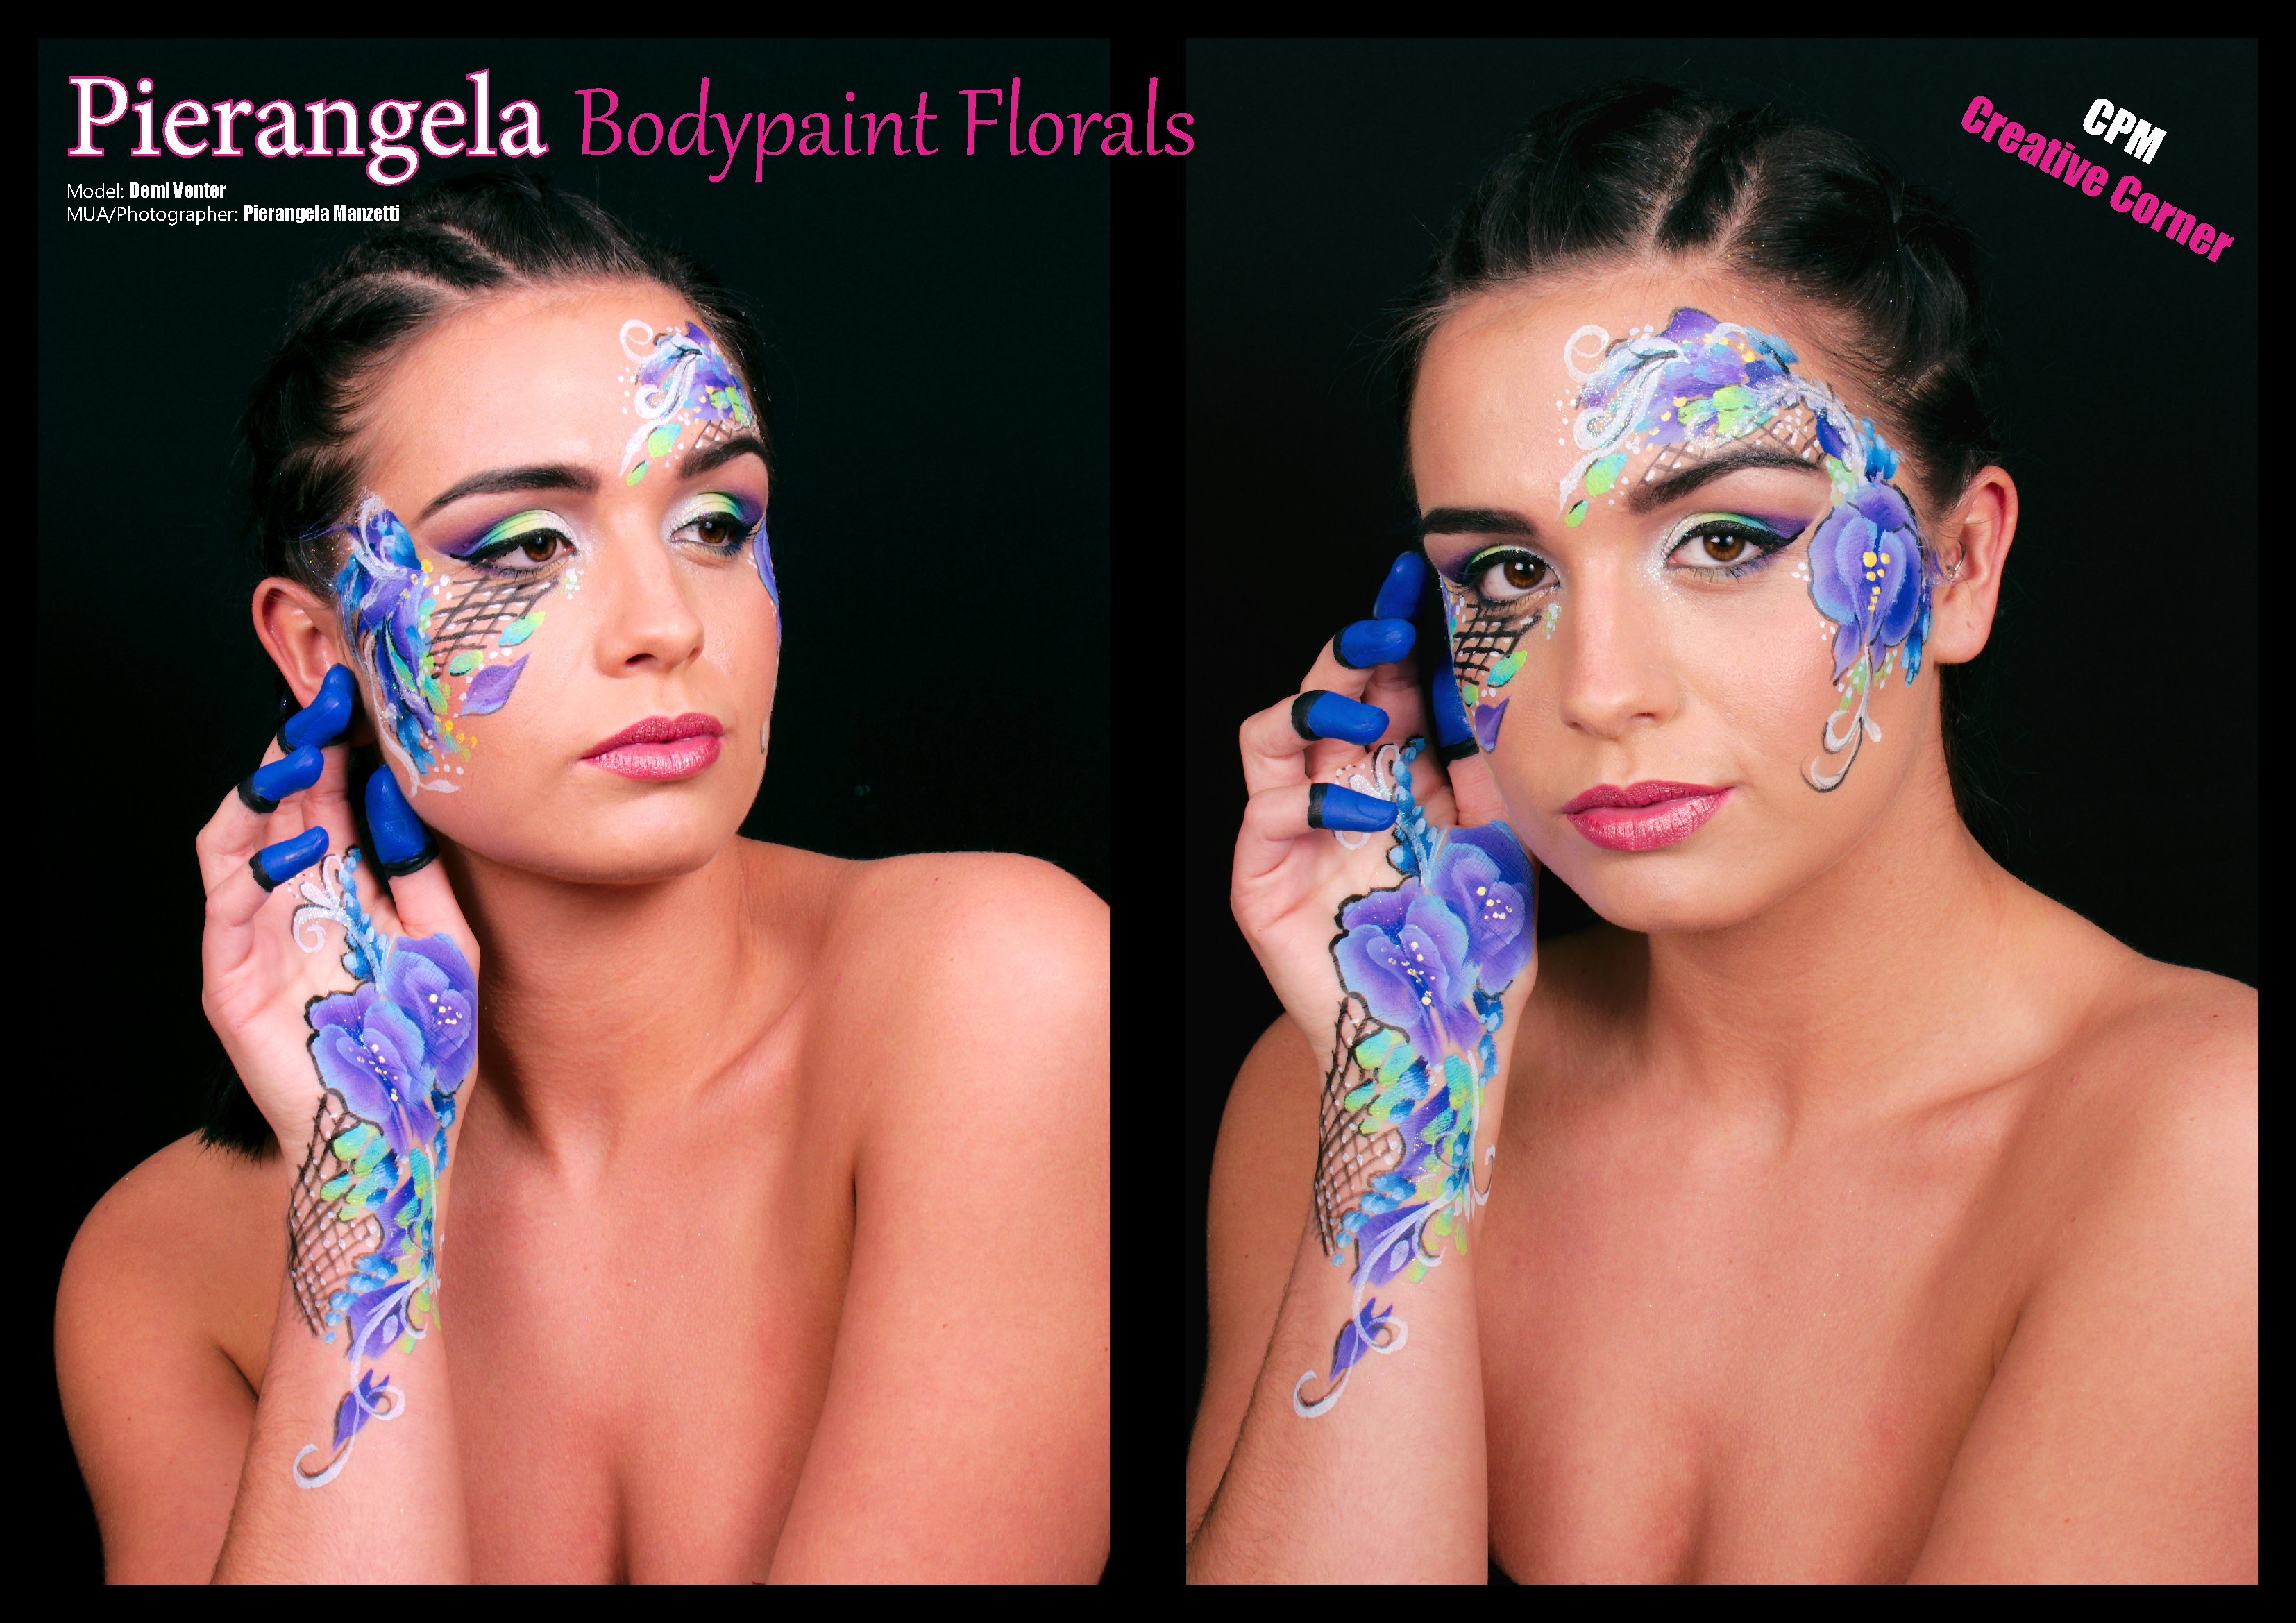 Body paint florals Tearsheet